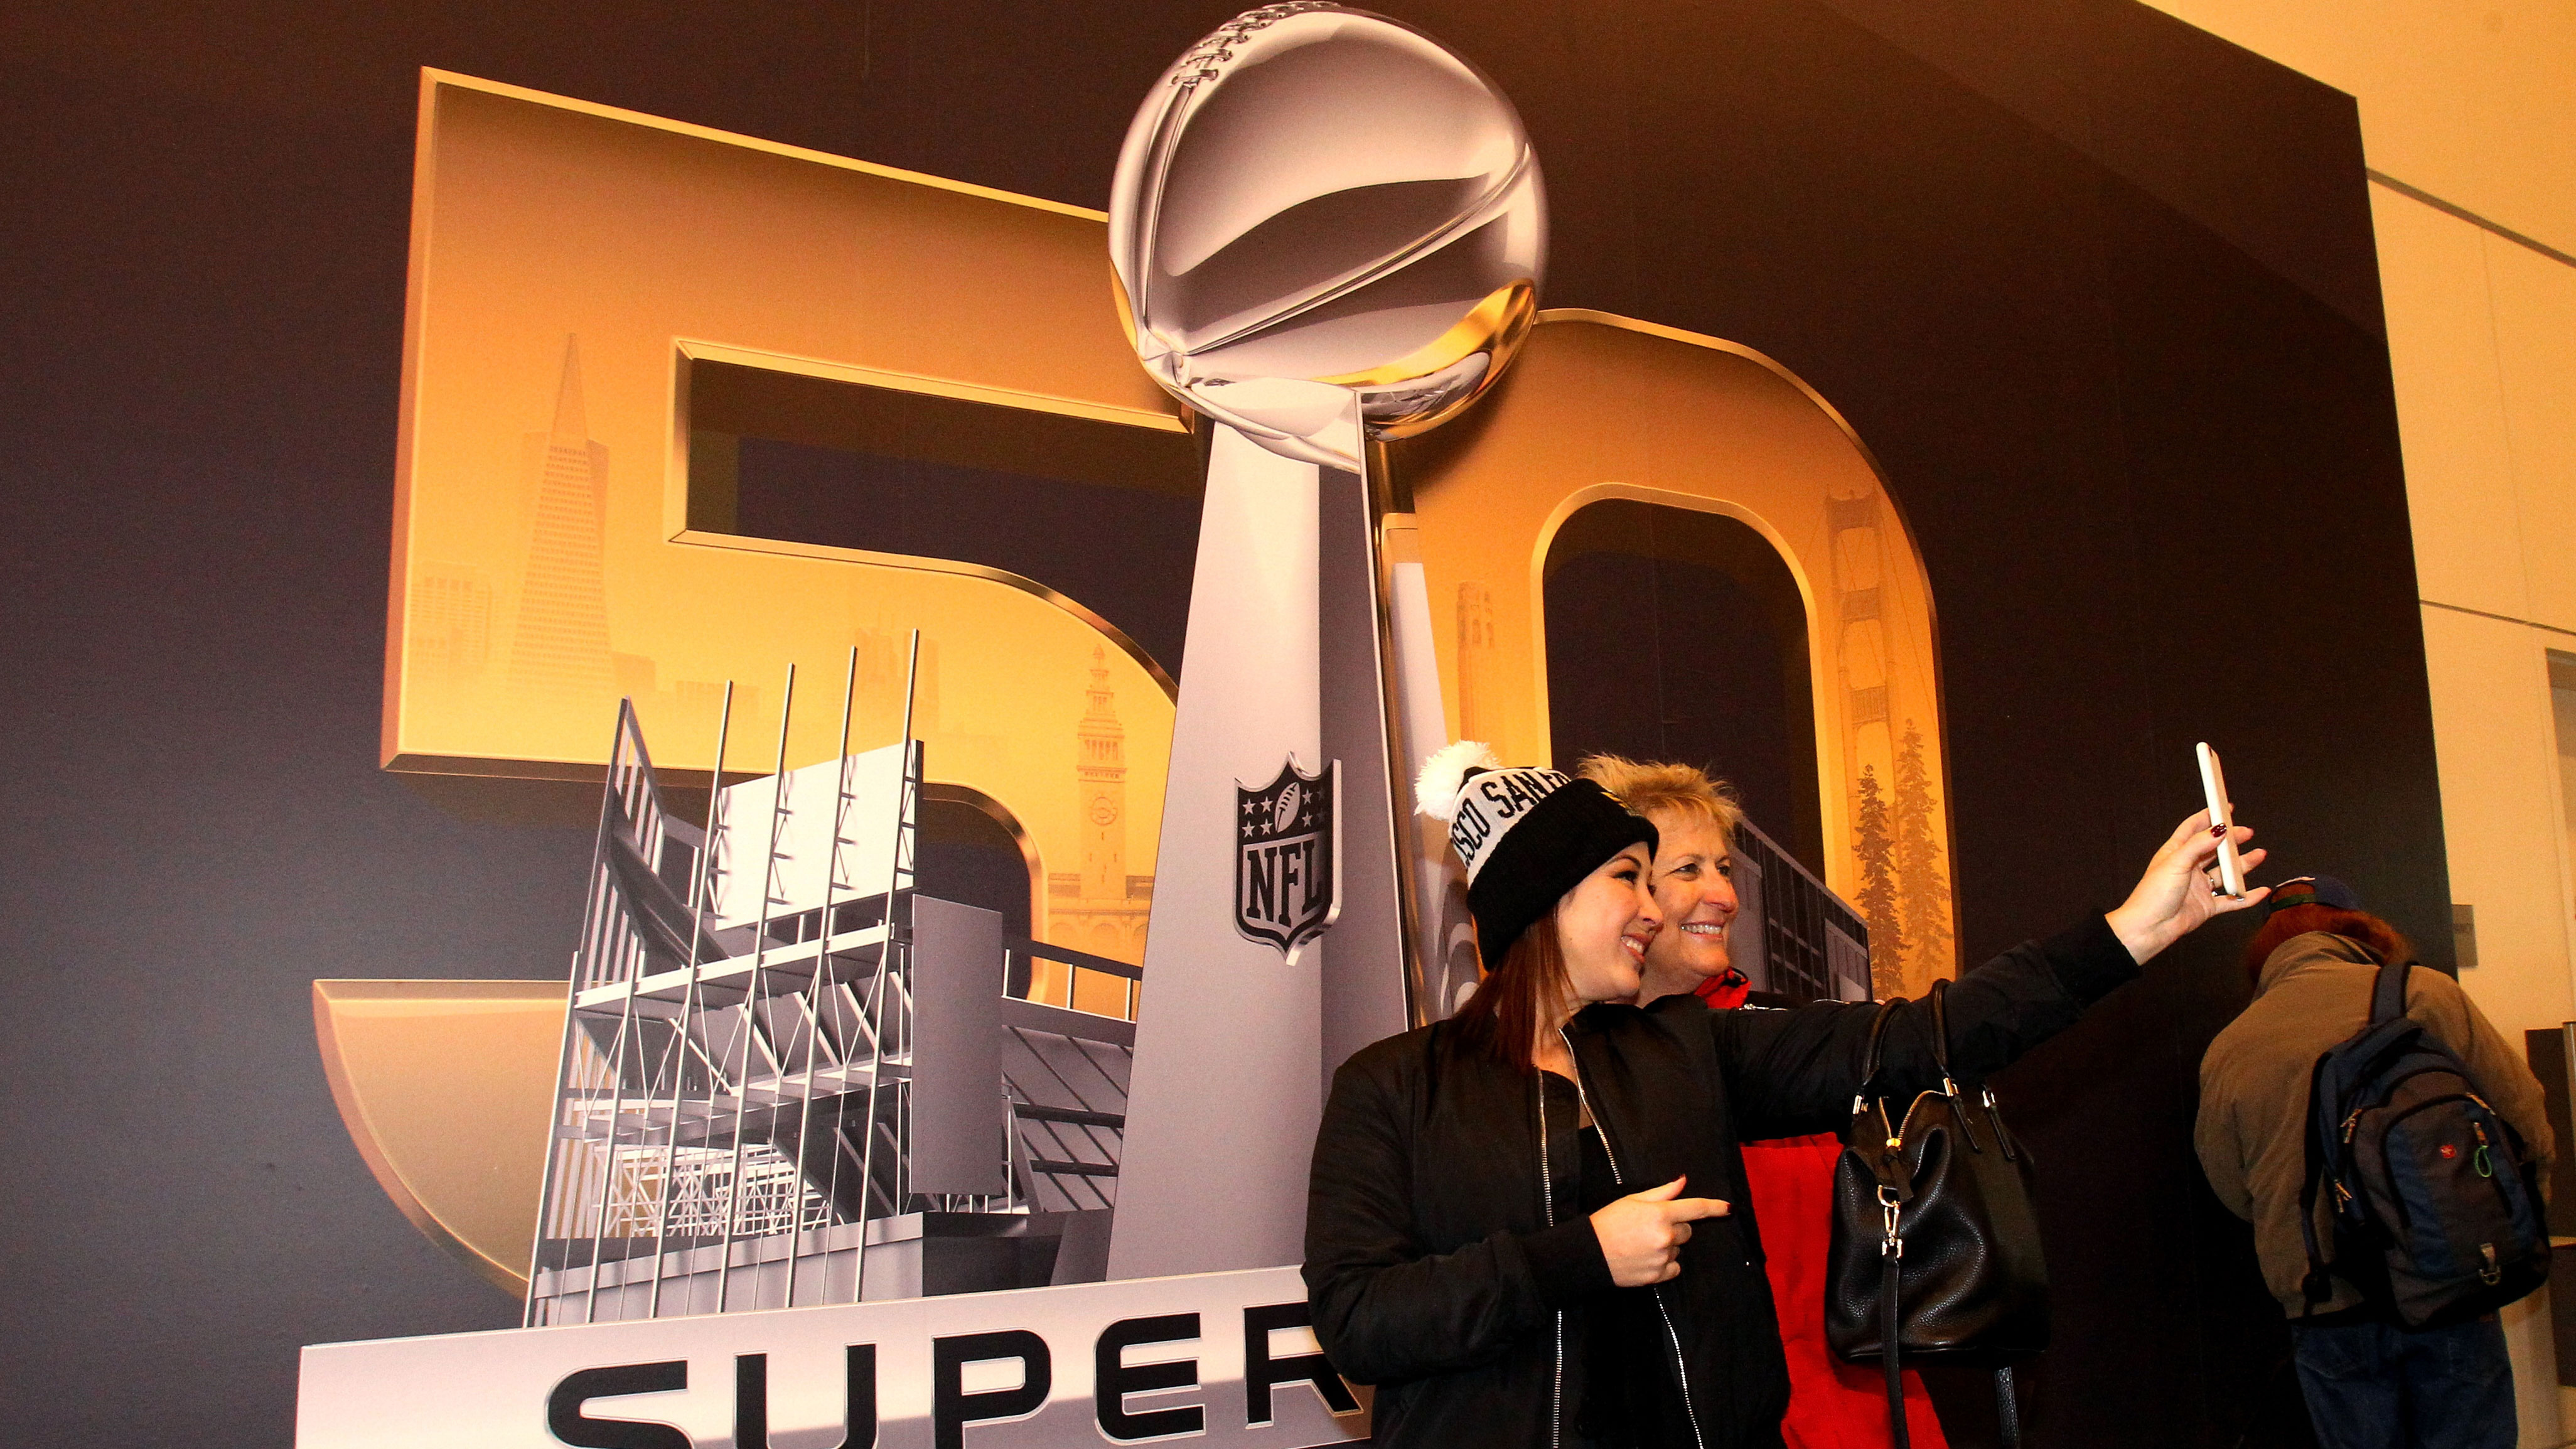 super bowl tickets stolen from san francisco hotel over 40k